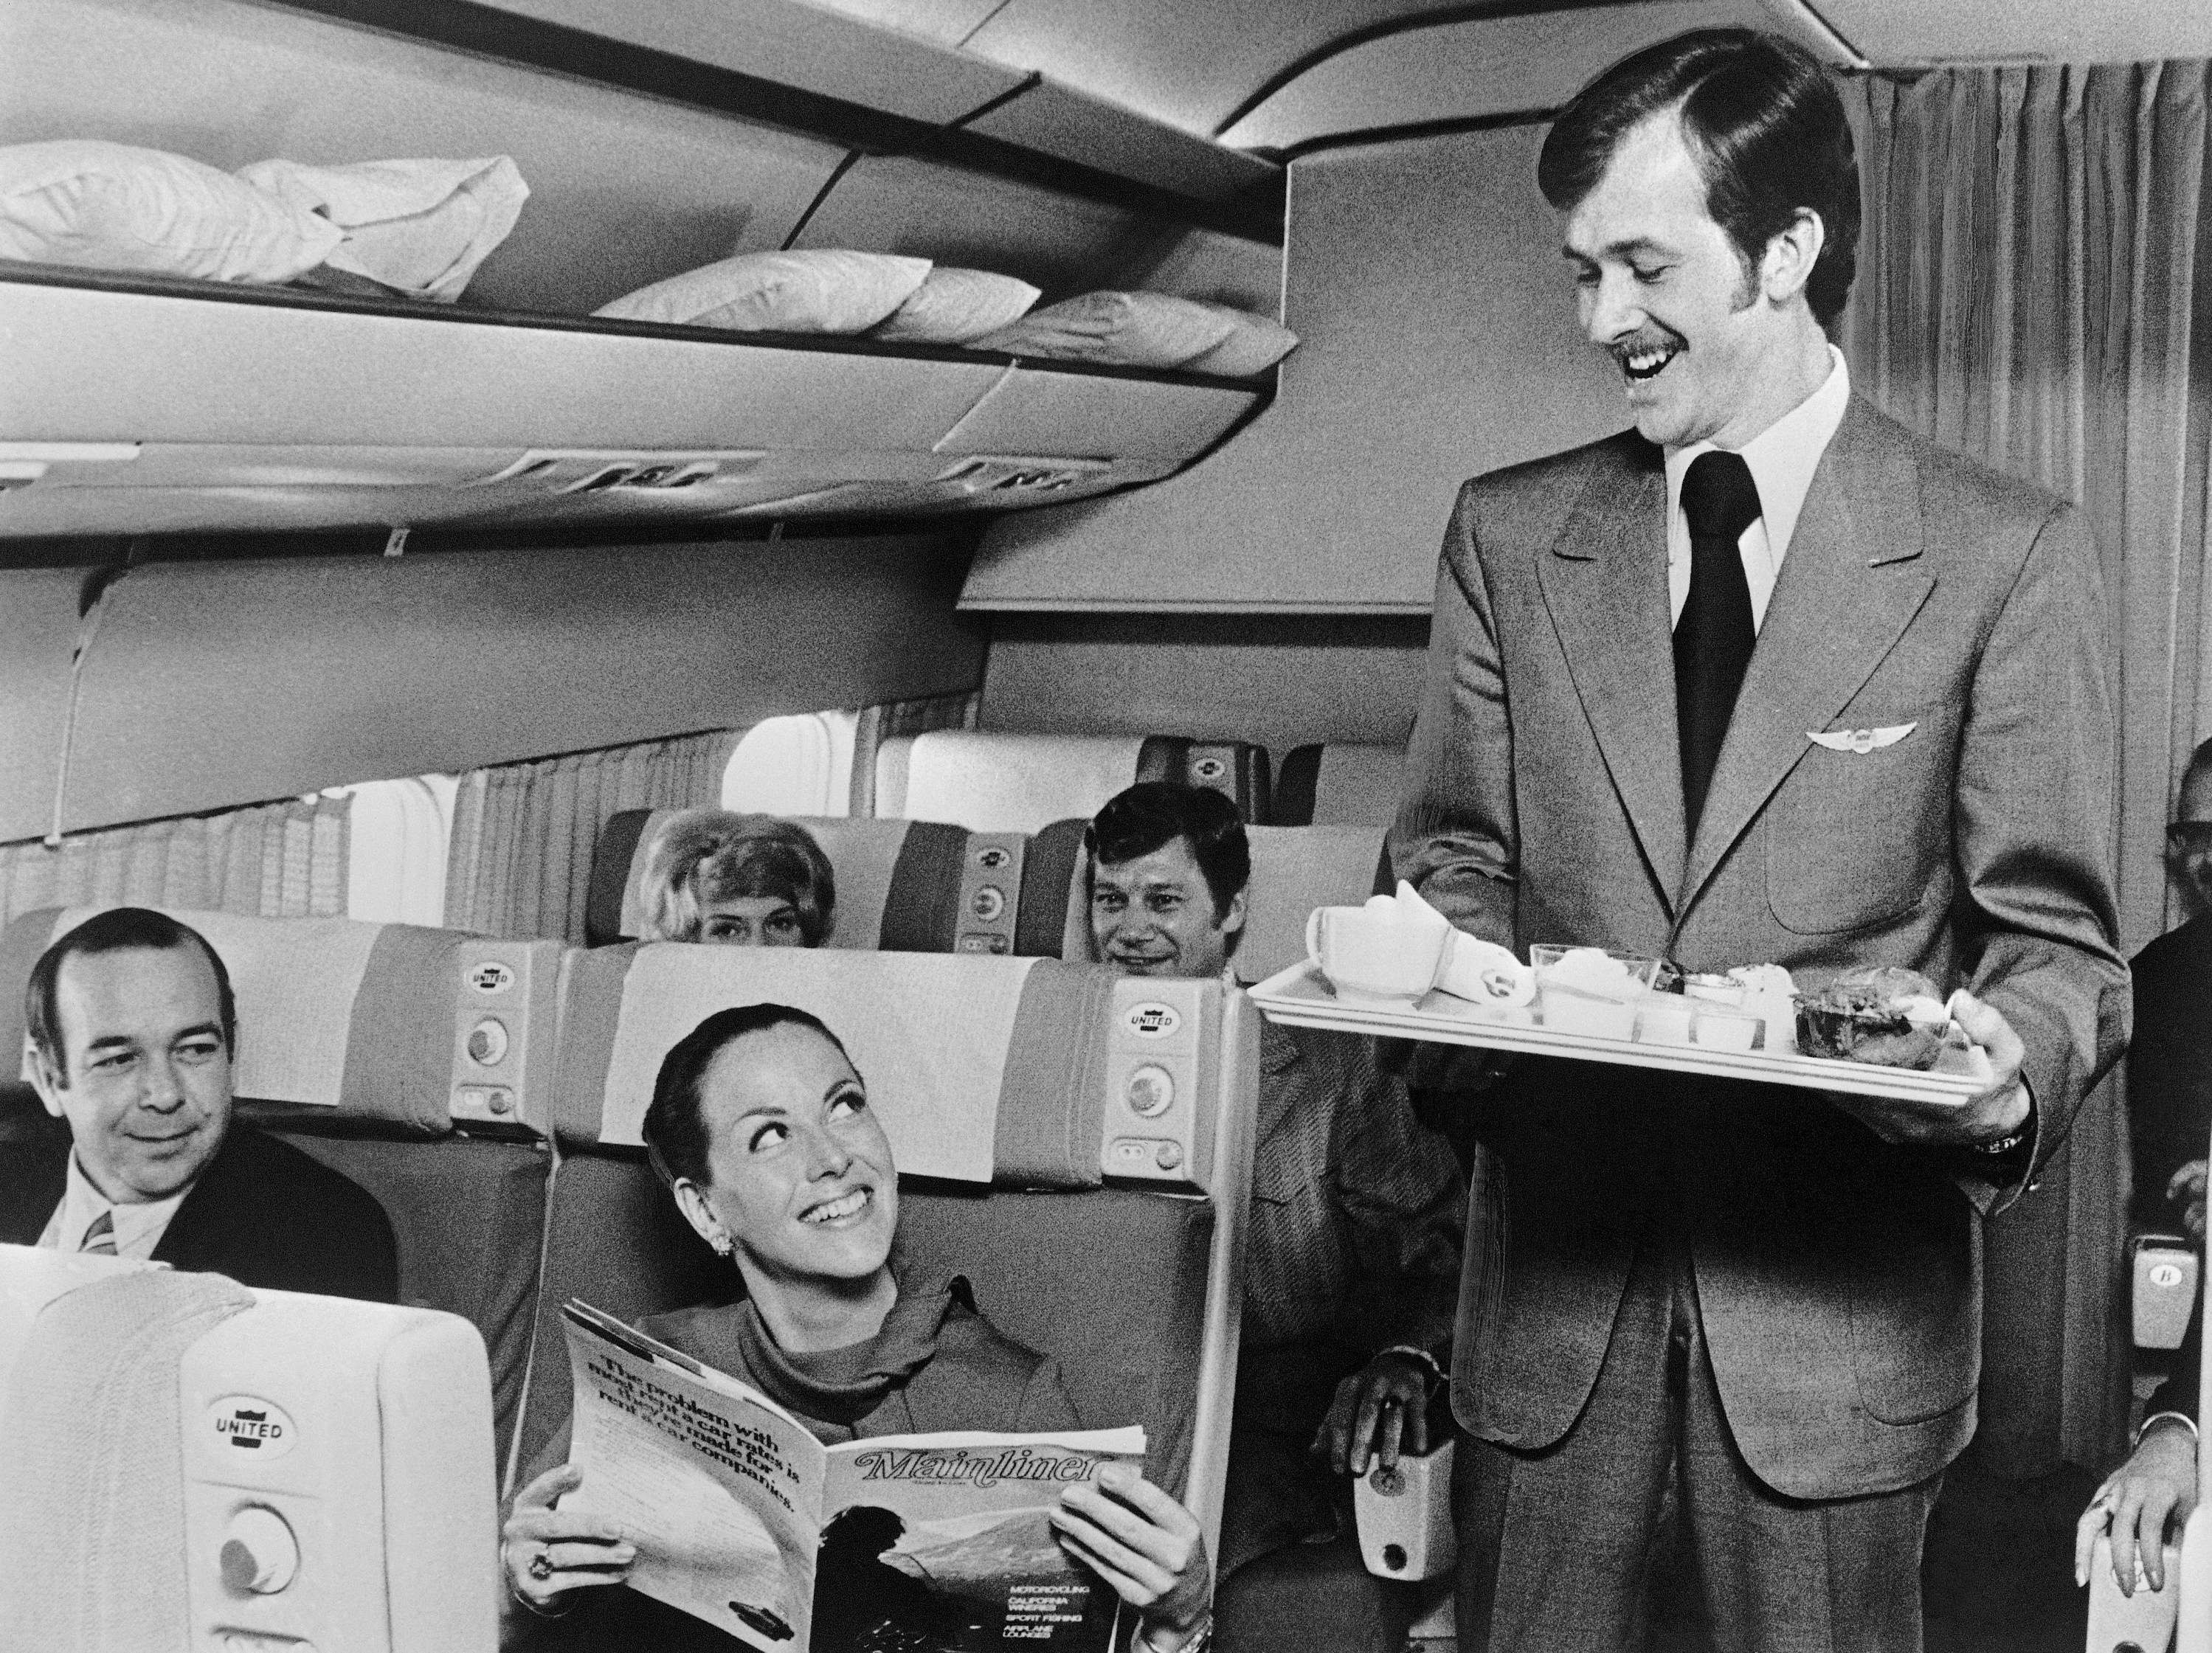 Furloughed Pilot As Flight Attendant 1972